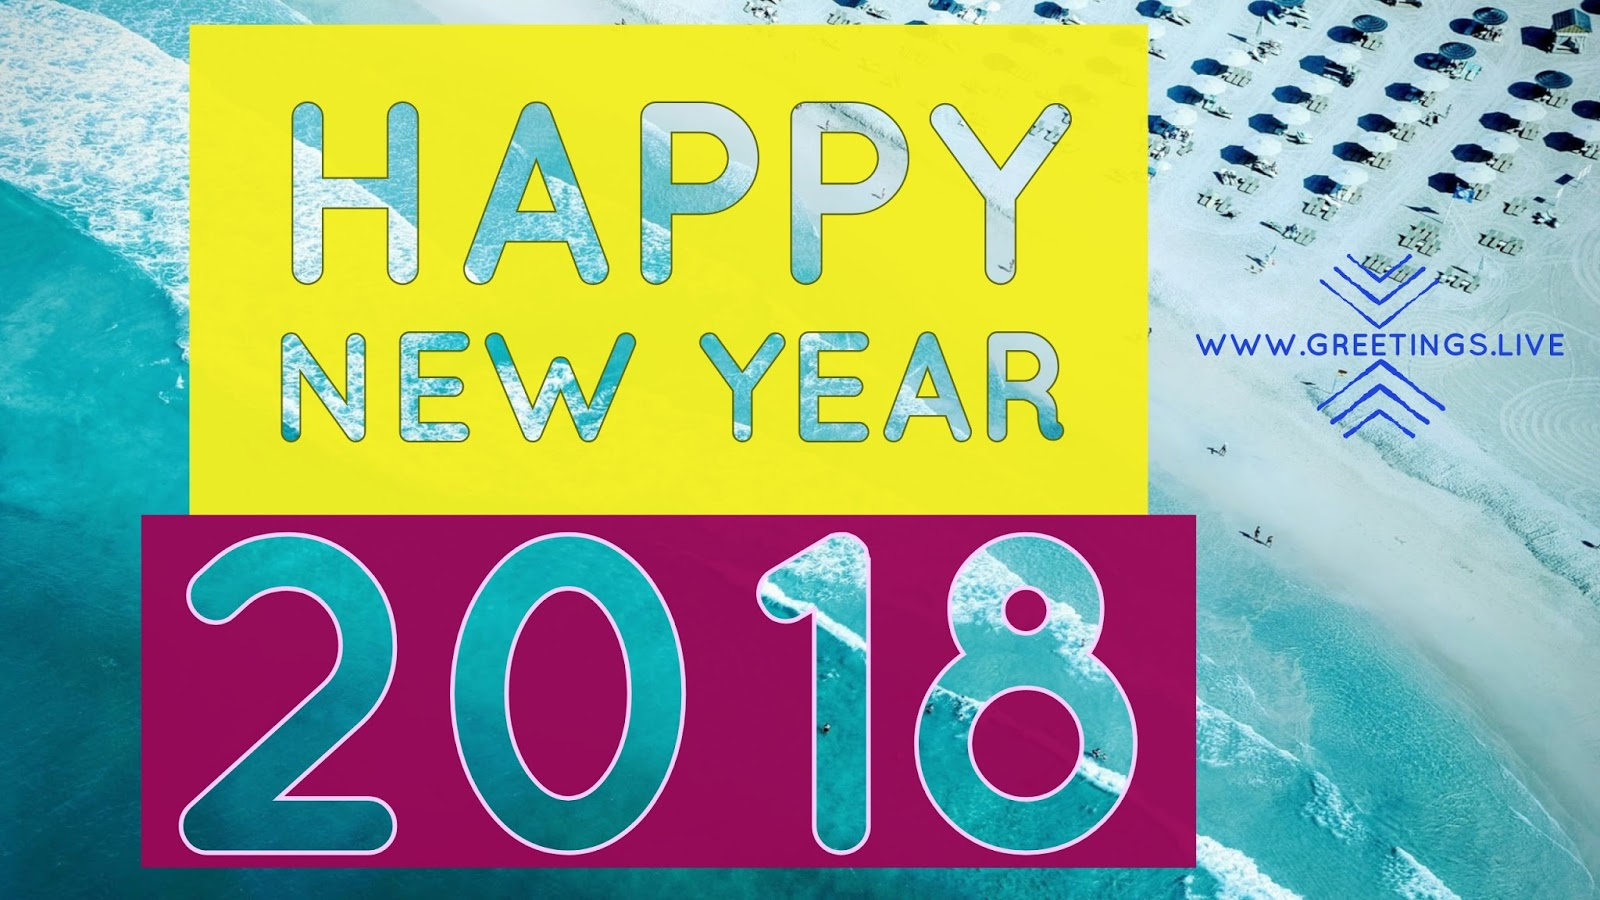 Telugu picture messages creative happy new year 2018 greeting cards creative happy new year 2018 greeting cards from greetingsve kristyandbryce Image collections